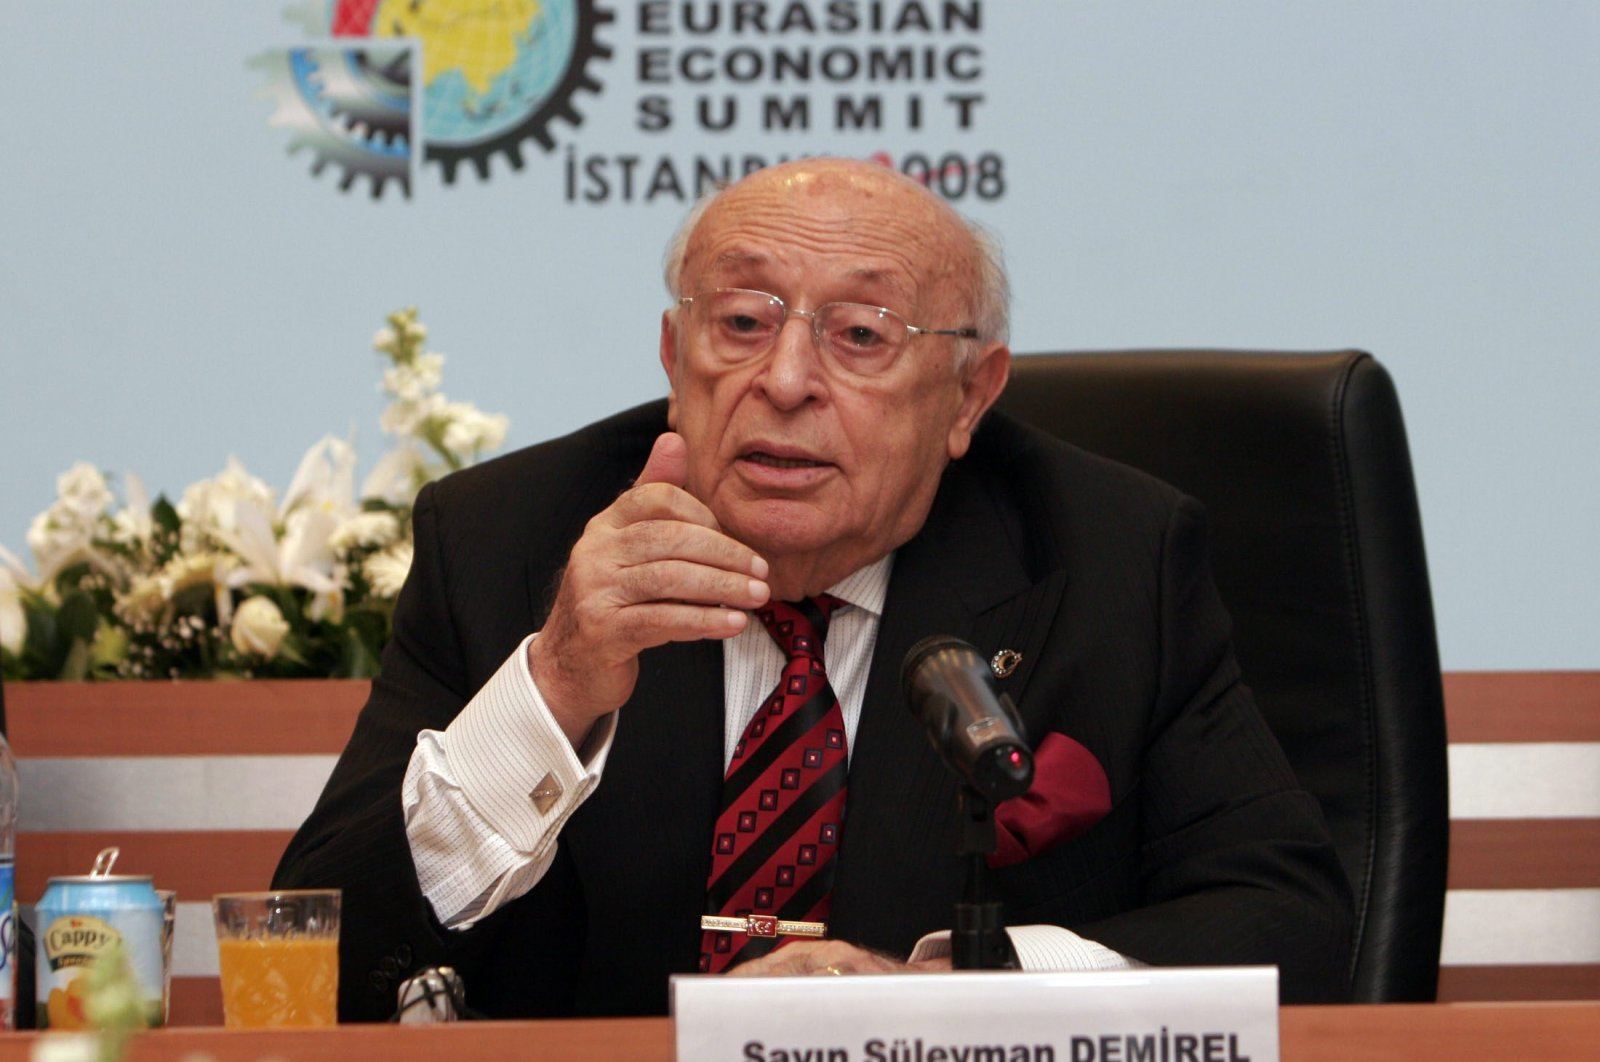 Late President Süleyman Demirel speaks at the Eurasian Economic Summit in Istanbul, May 3, 2008 (Sabah File Photo)